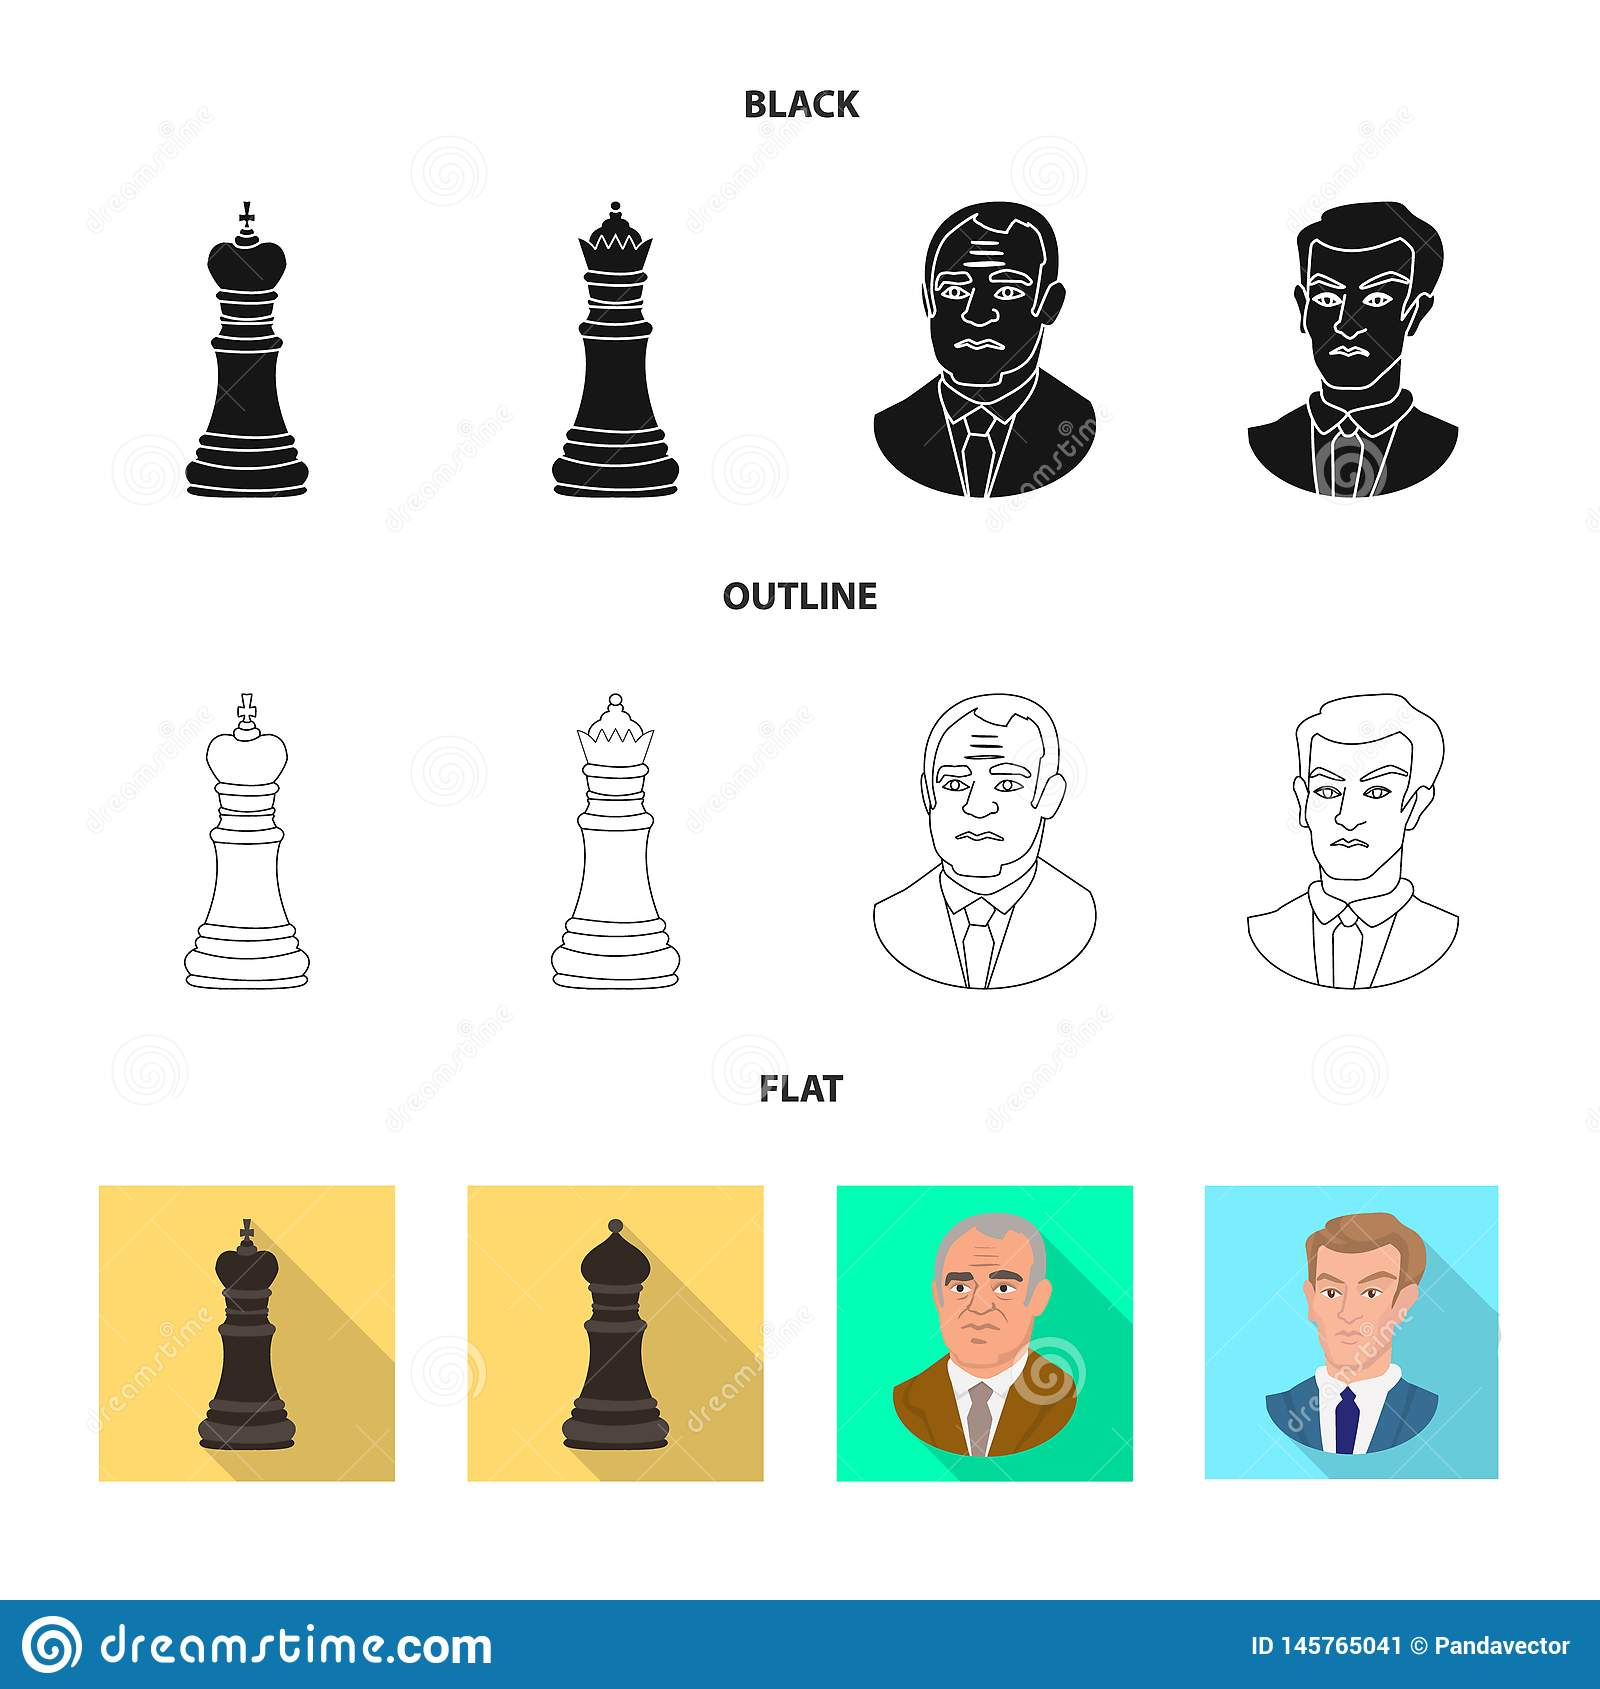 Ilustra??o do vetor do checkmate e do ?cone fino Cole??o do s?mbolo de a??es do checkmate e do alvo para a Web